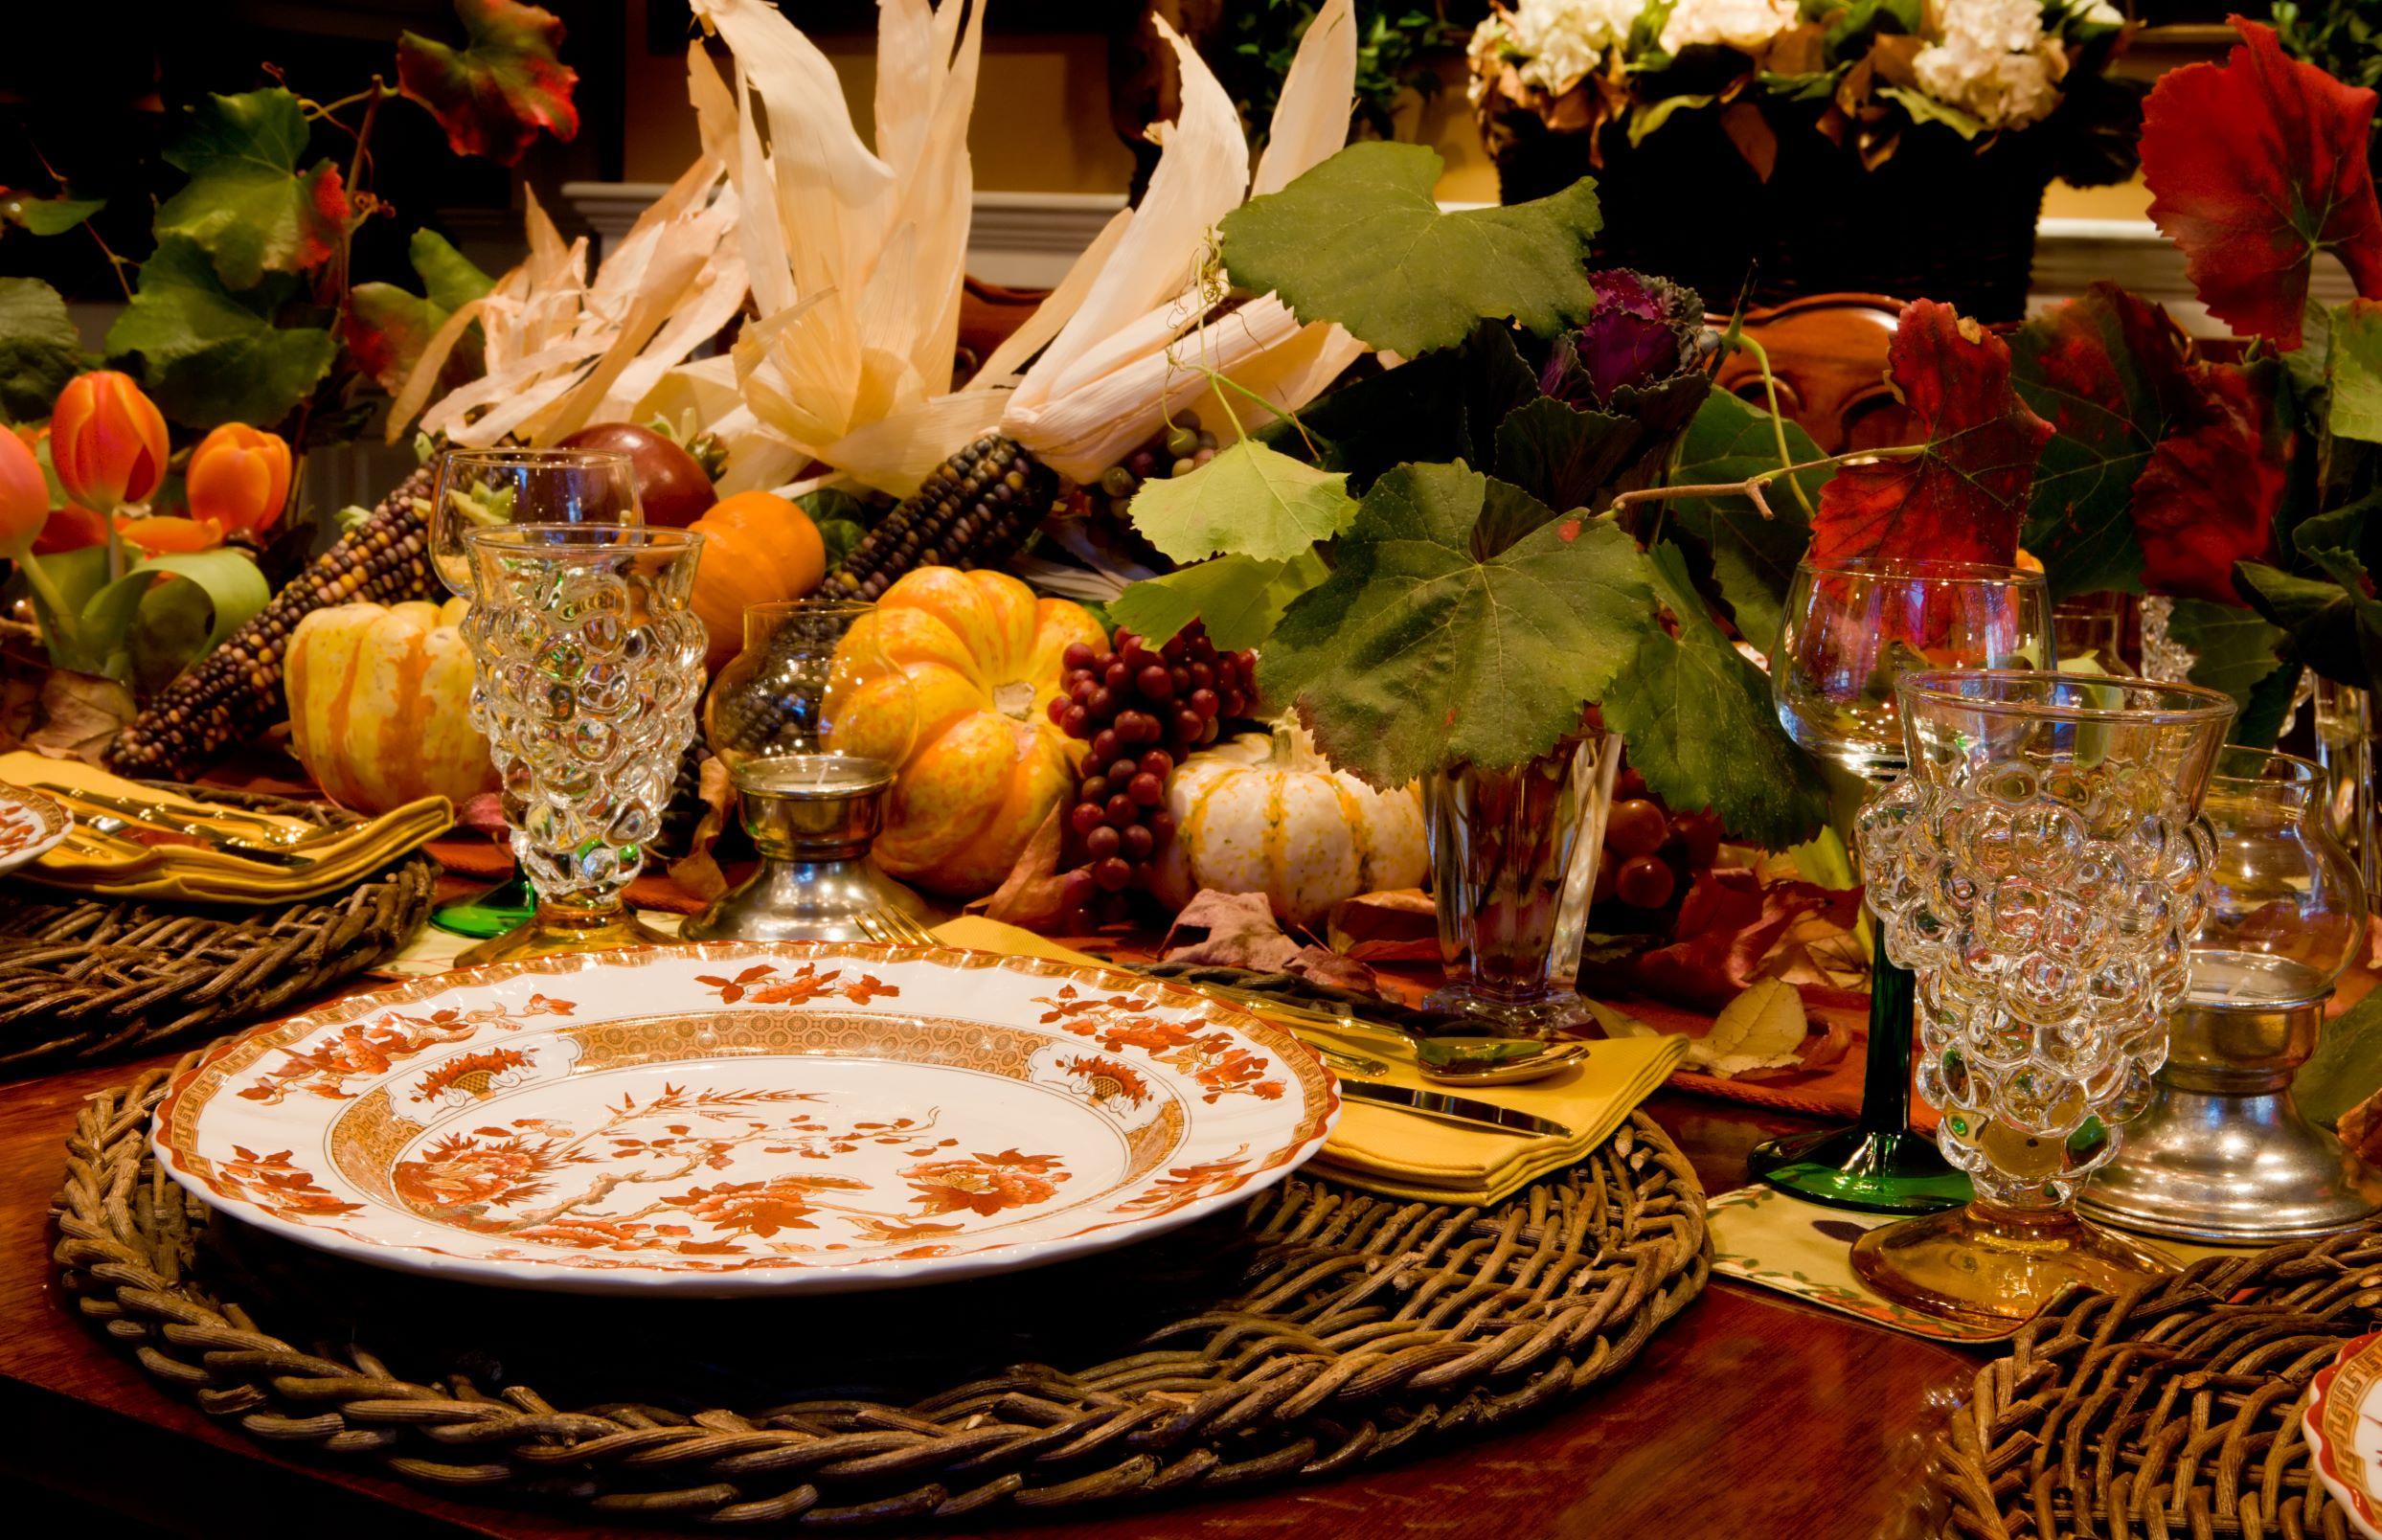 Traditional thanksgiving table with season's harvest centerpiece.